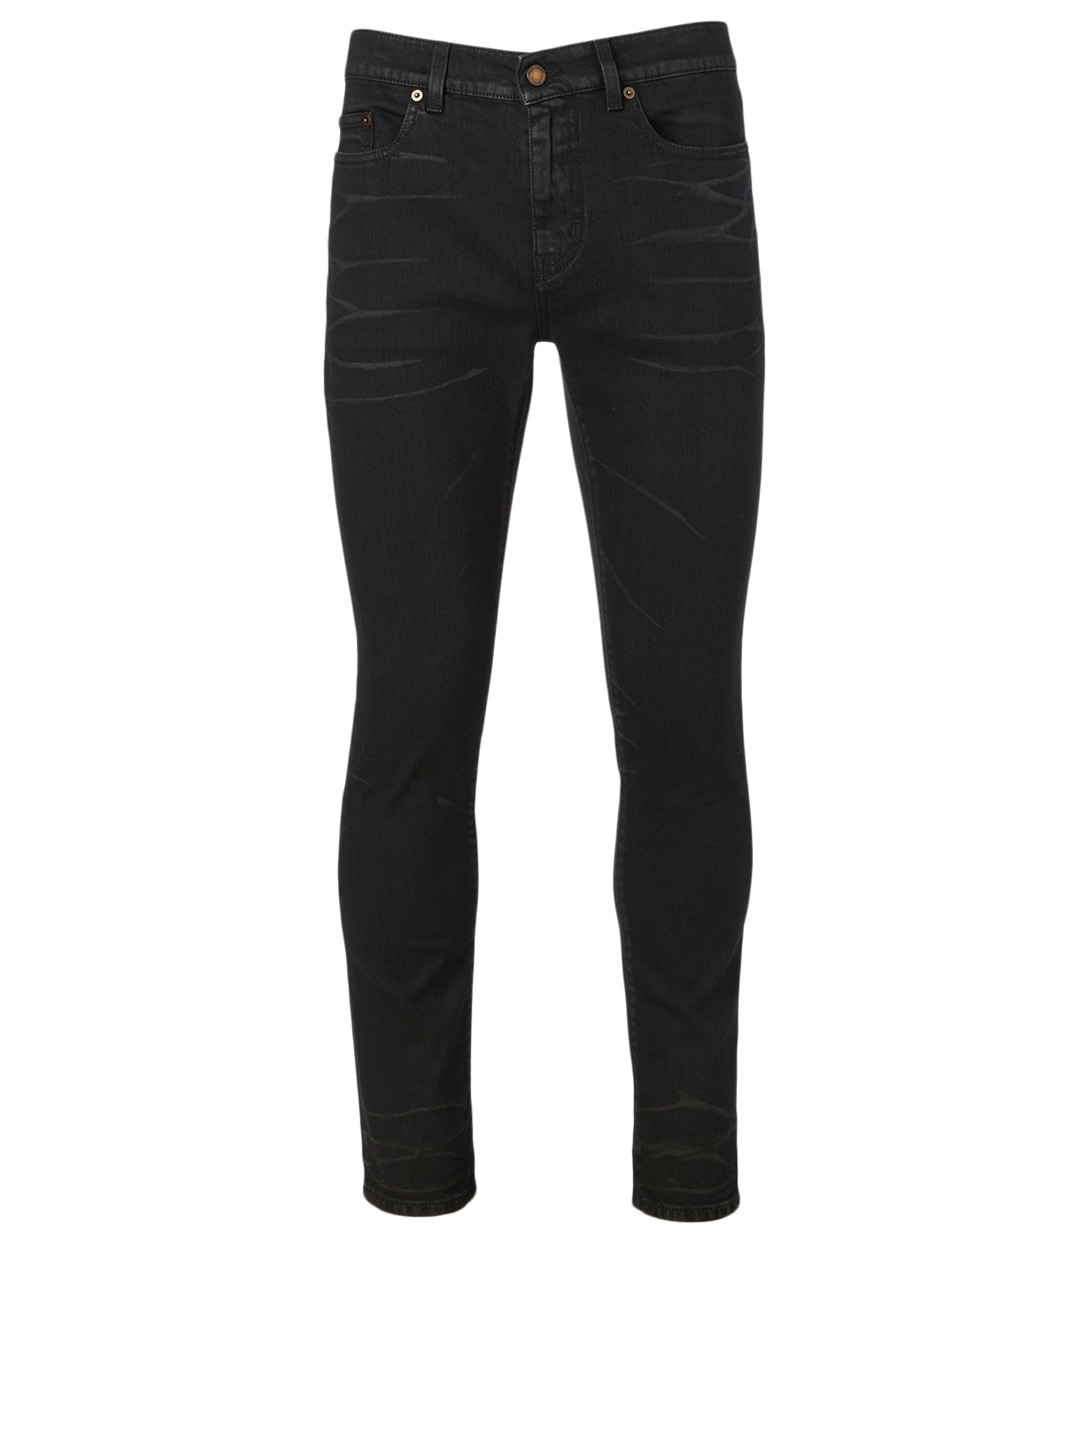 SAINT LAURENT Cropped Skinny Jeans Men's Black